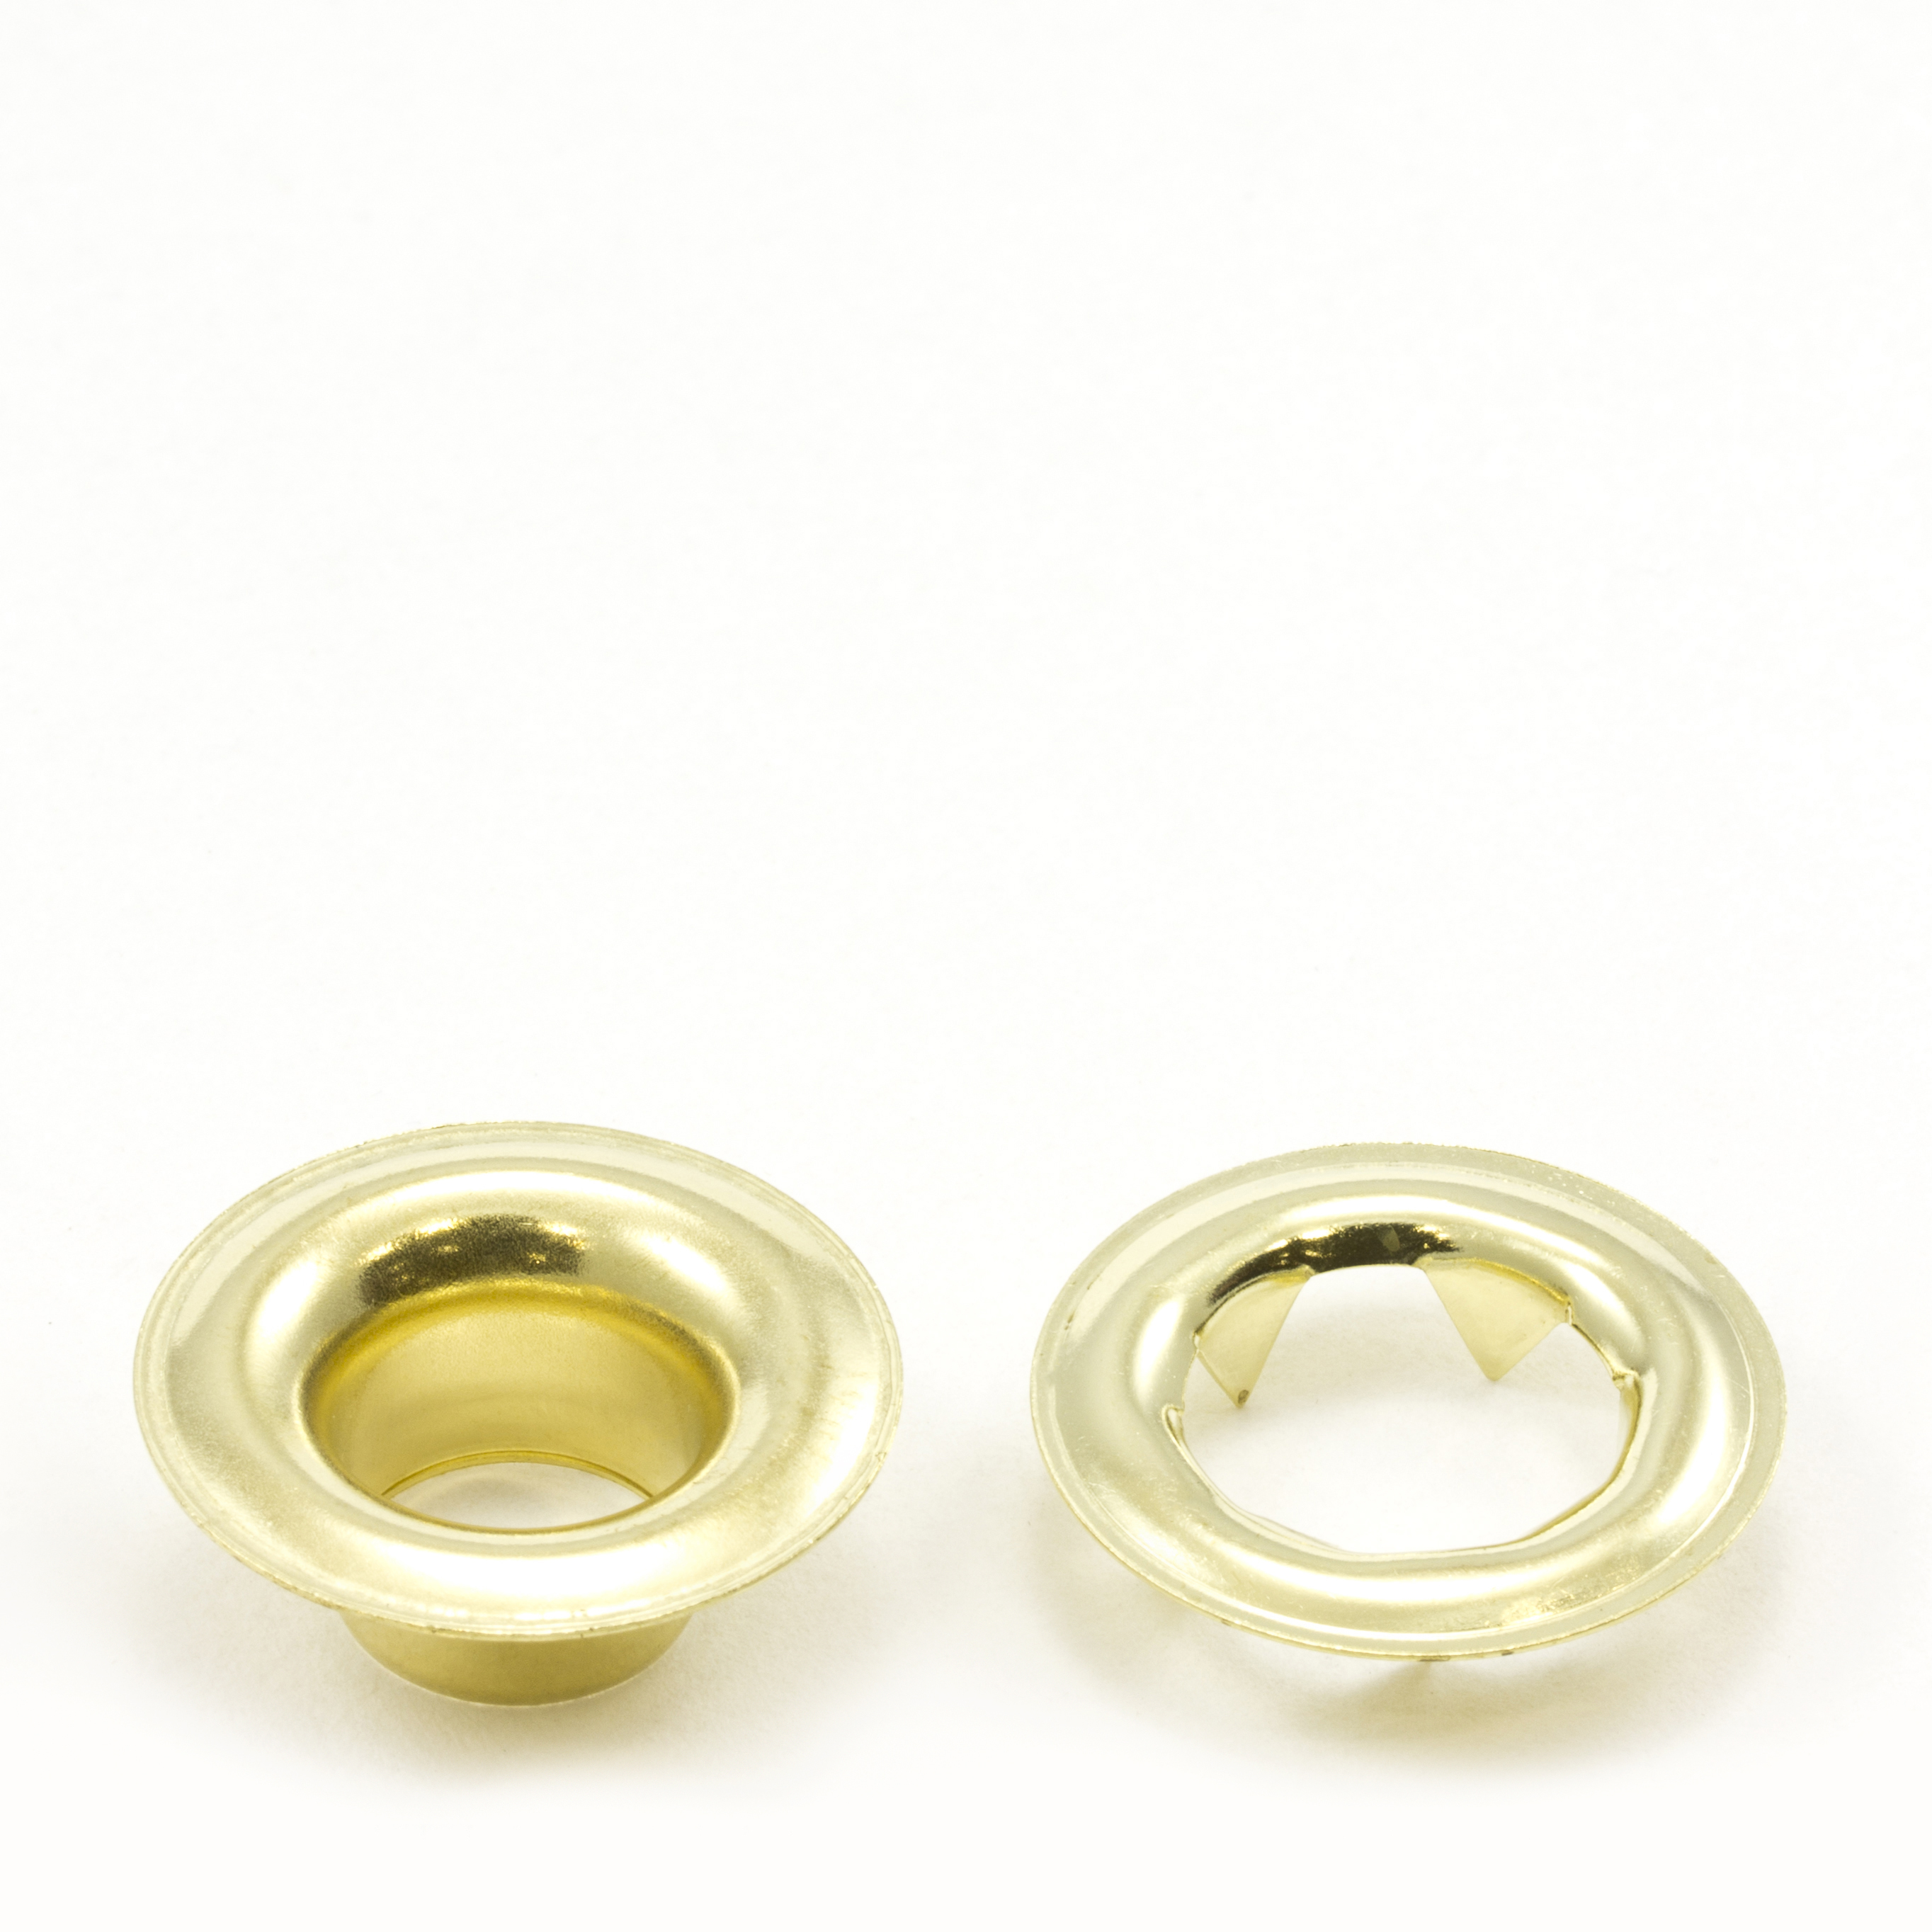 Thumbnail Grommet with Tooth Washer #4 Brass 1/2 1